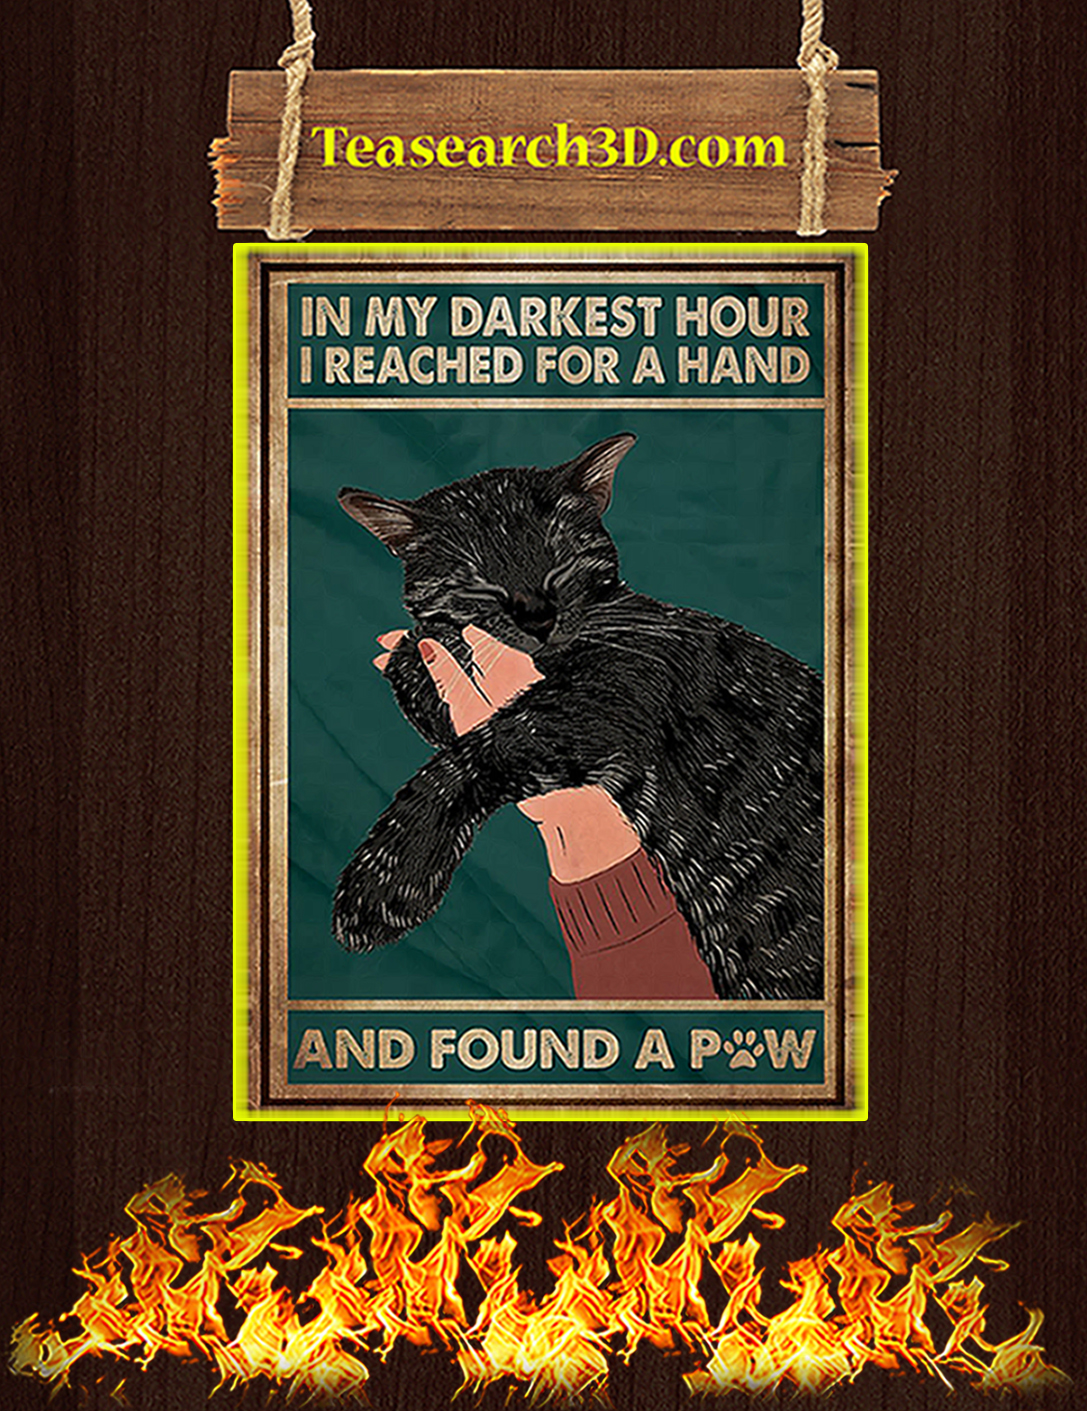 Black cat in my darkest hour I reached for a hand and found a paw poster A2